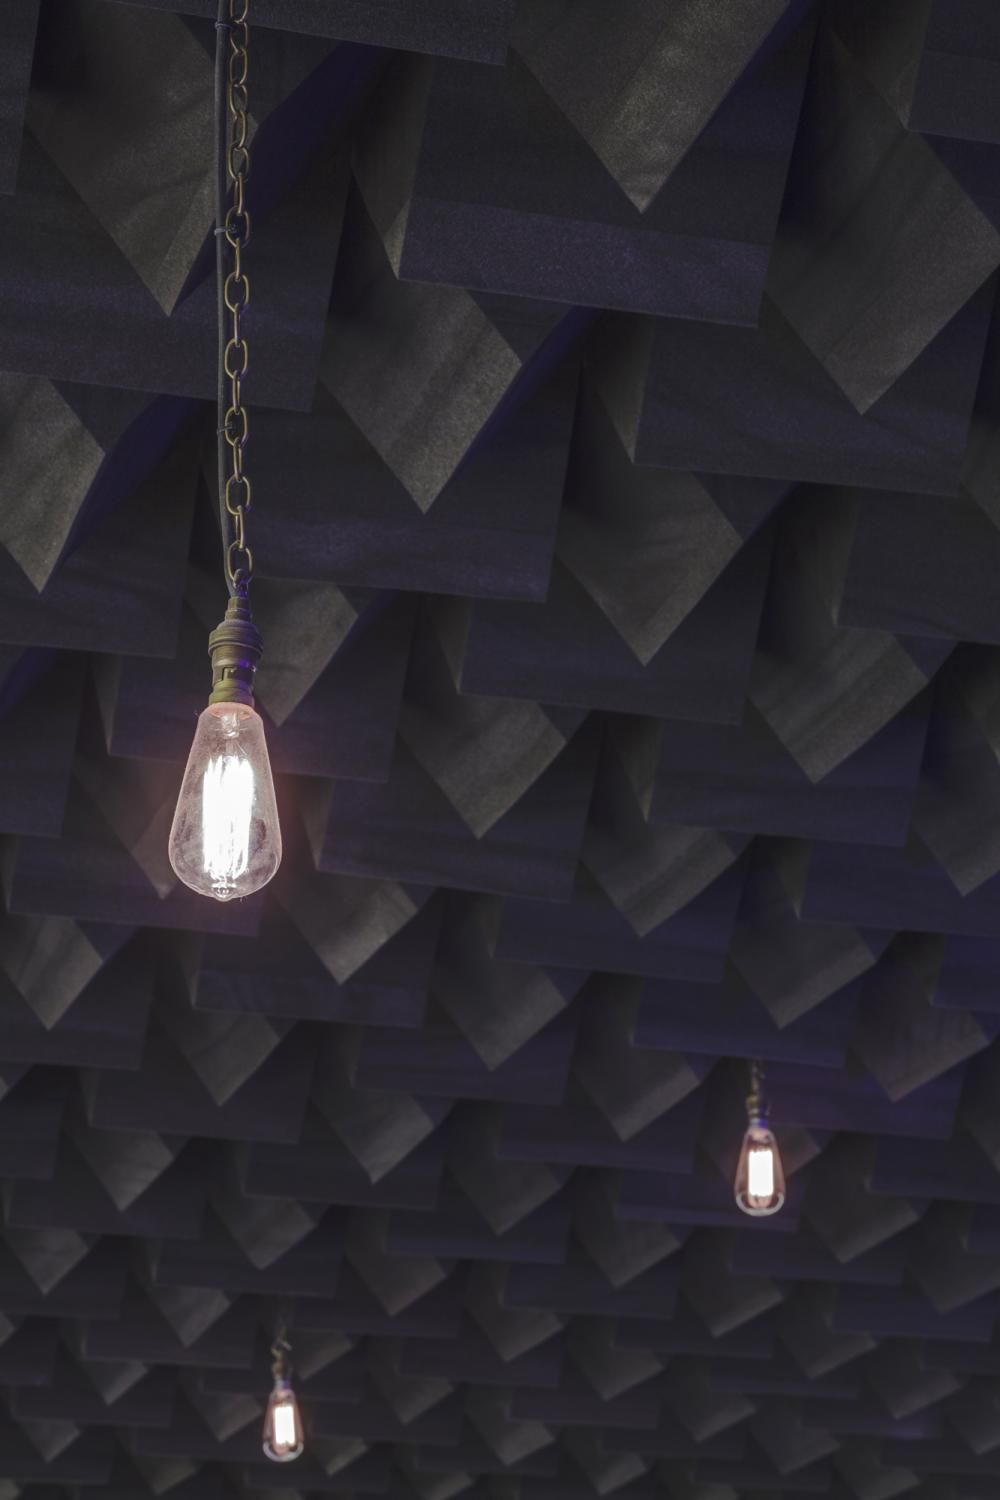 Acoustic ceiling treatment for Jump Studios.